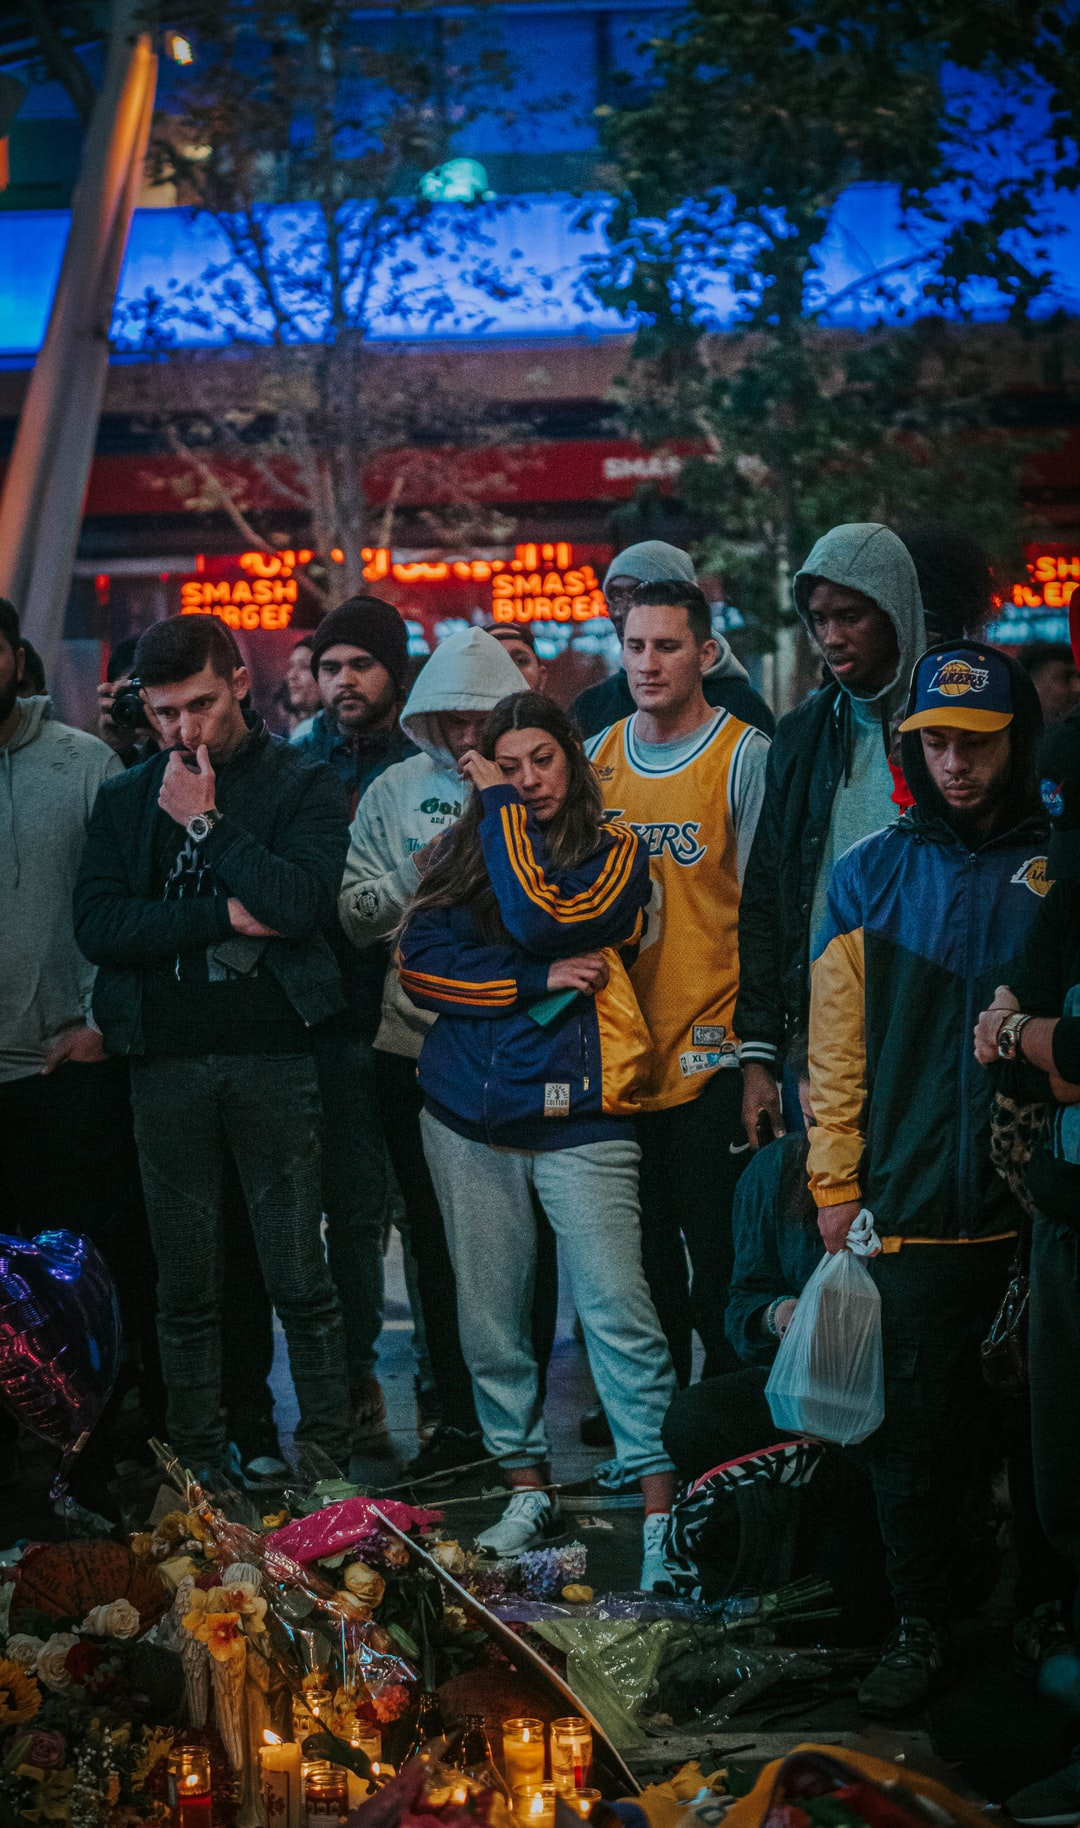 Fan's mourn Kobe Bryant's death at a vigil at Staples Center on January 26th, 2020.